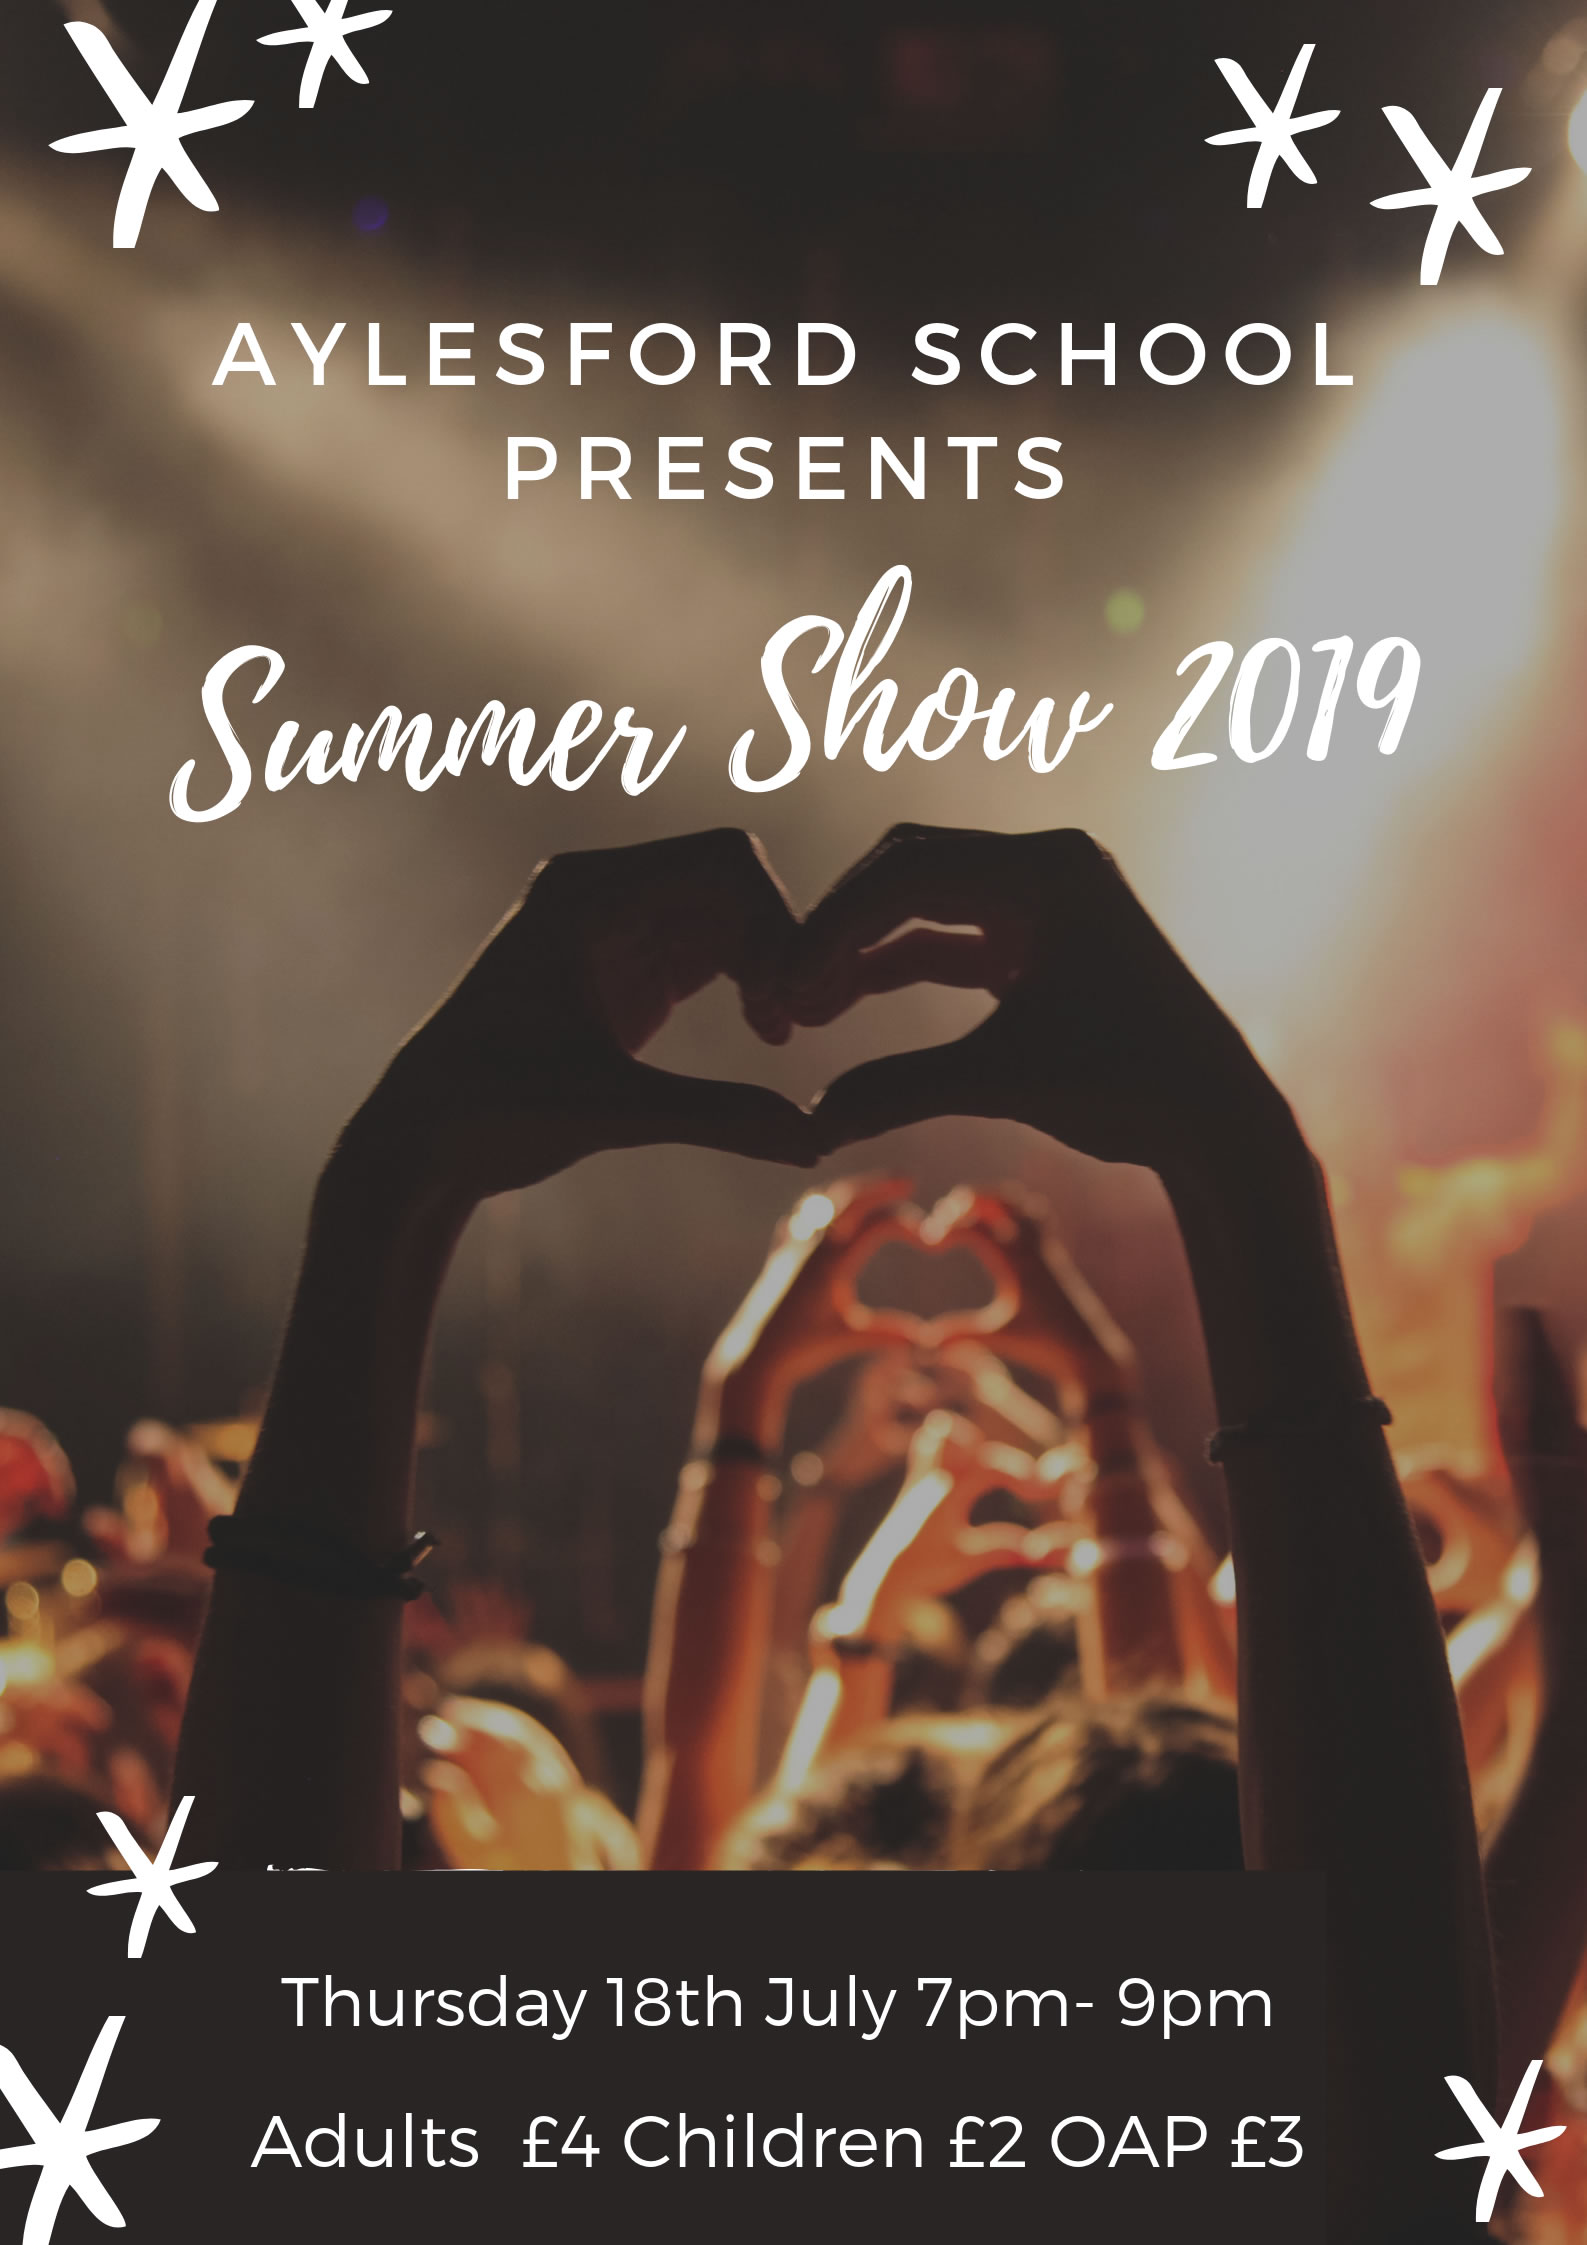 Summer Concert 2019 - Thursday 18th July 7pm - 9pm